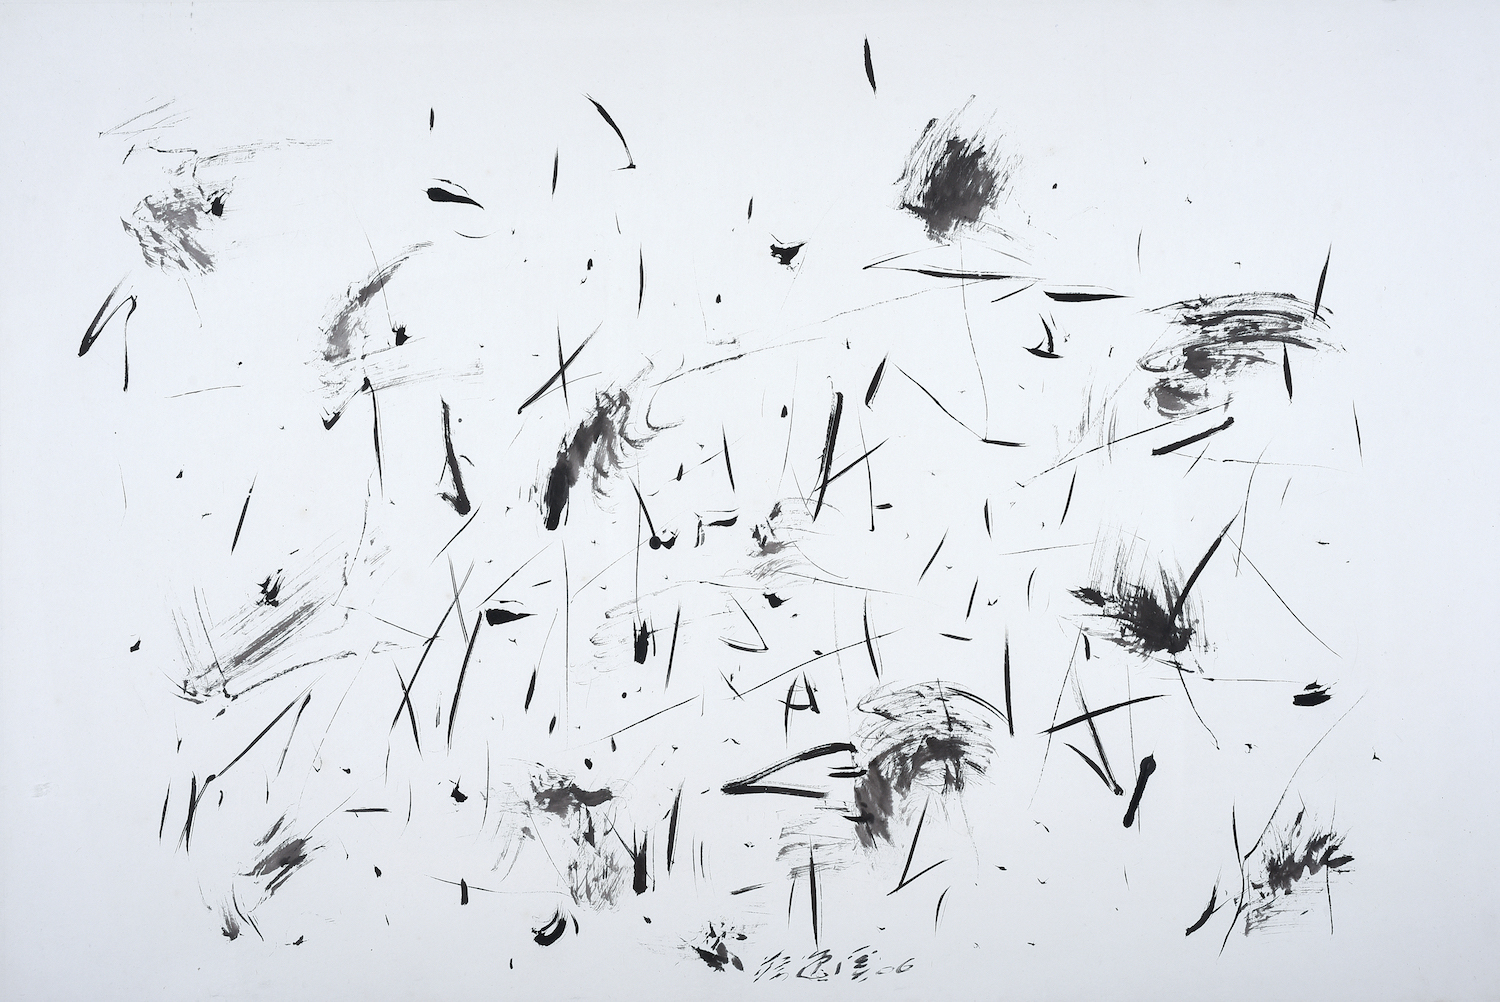 Chua Ek Kay, 'Lotus Pond' Series, 2006, ink on paper, 99 x 146 cm. Image courtesy of Art Agenda, S.E.A.